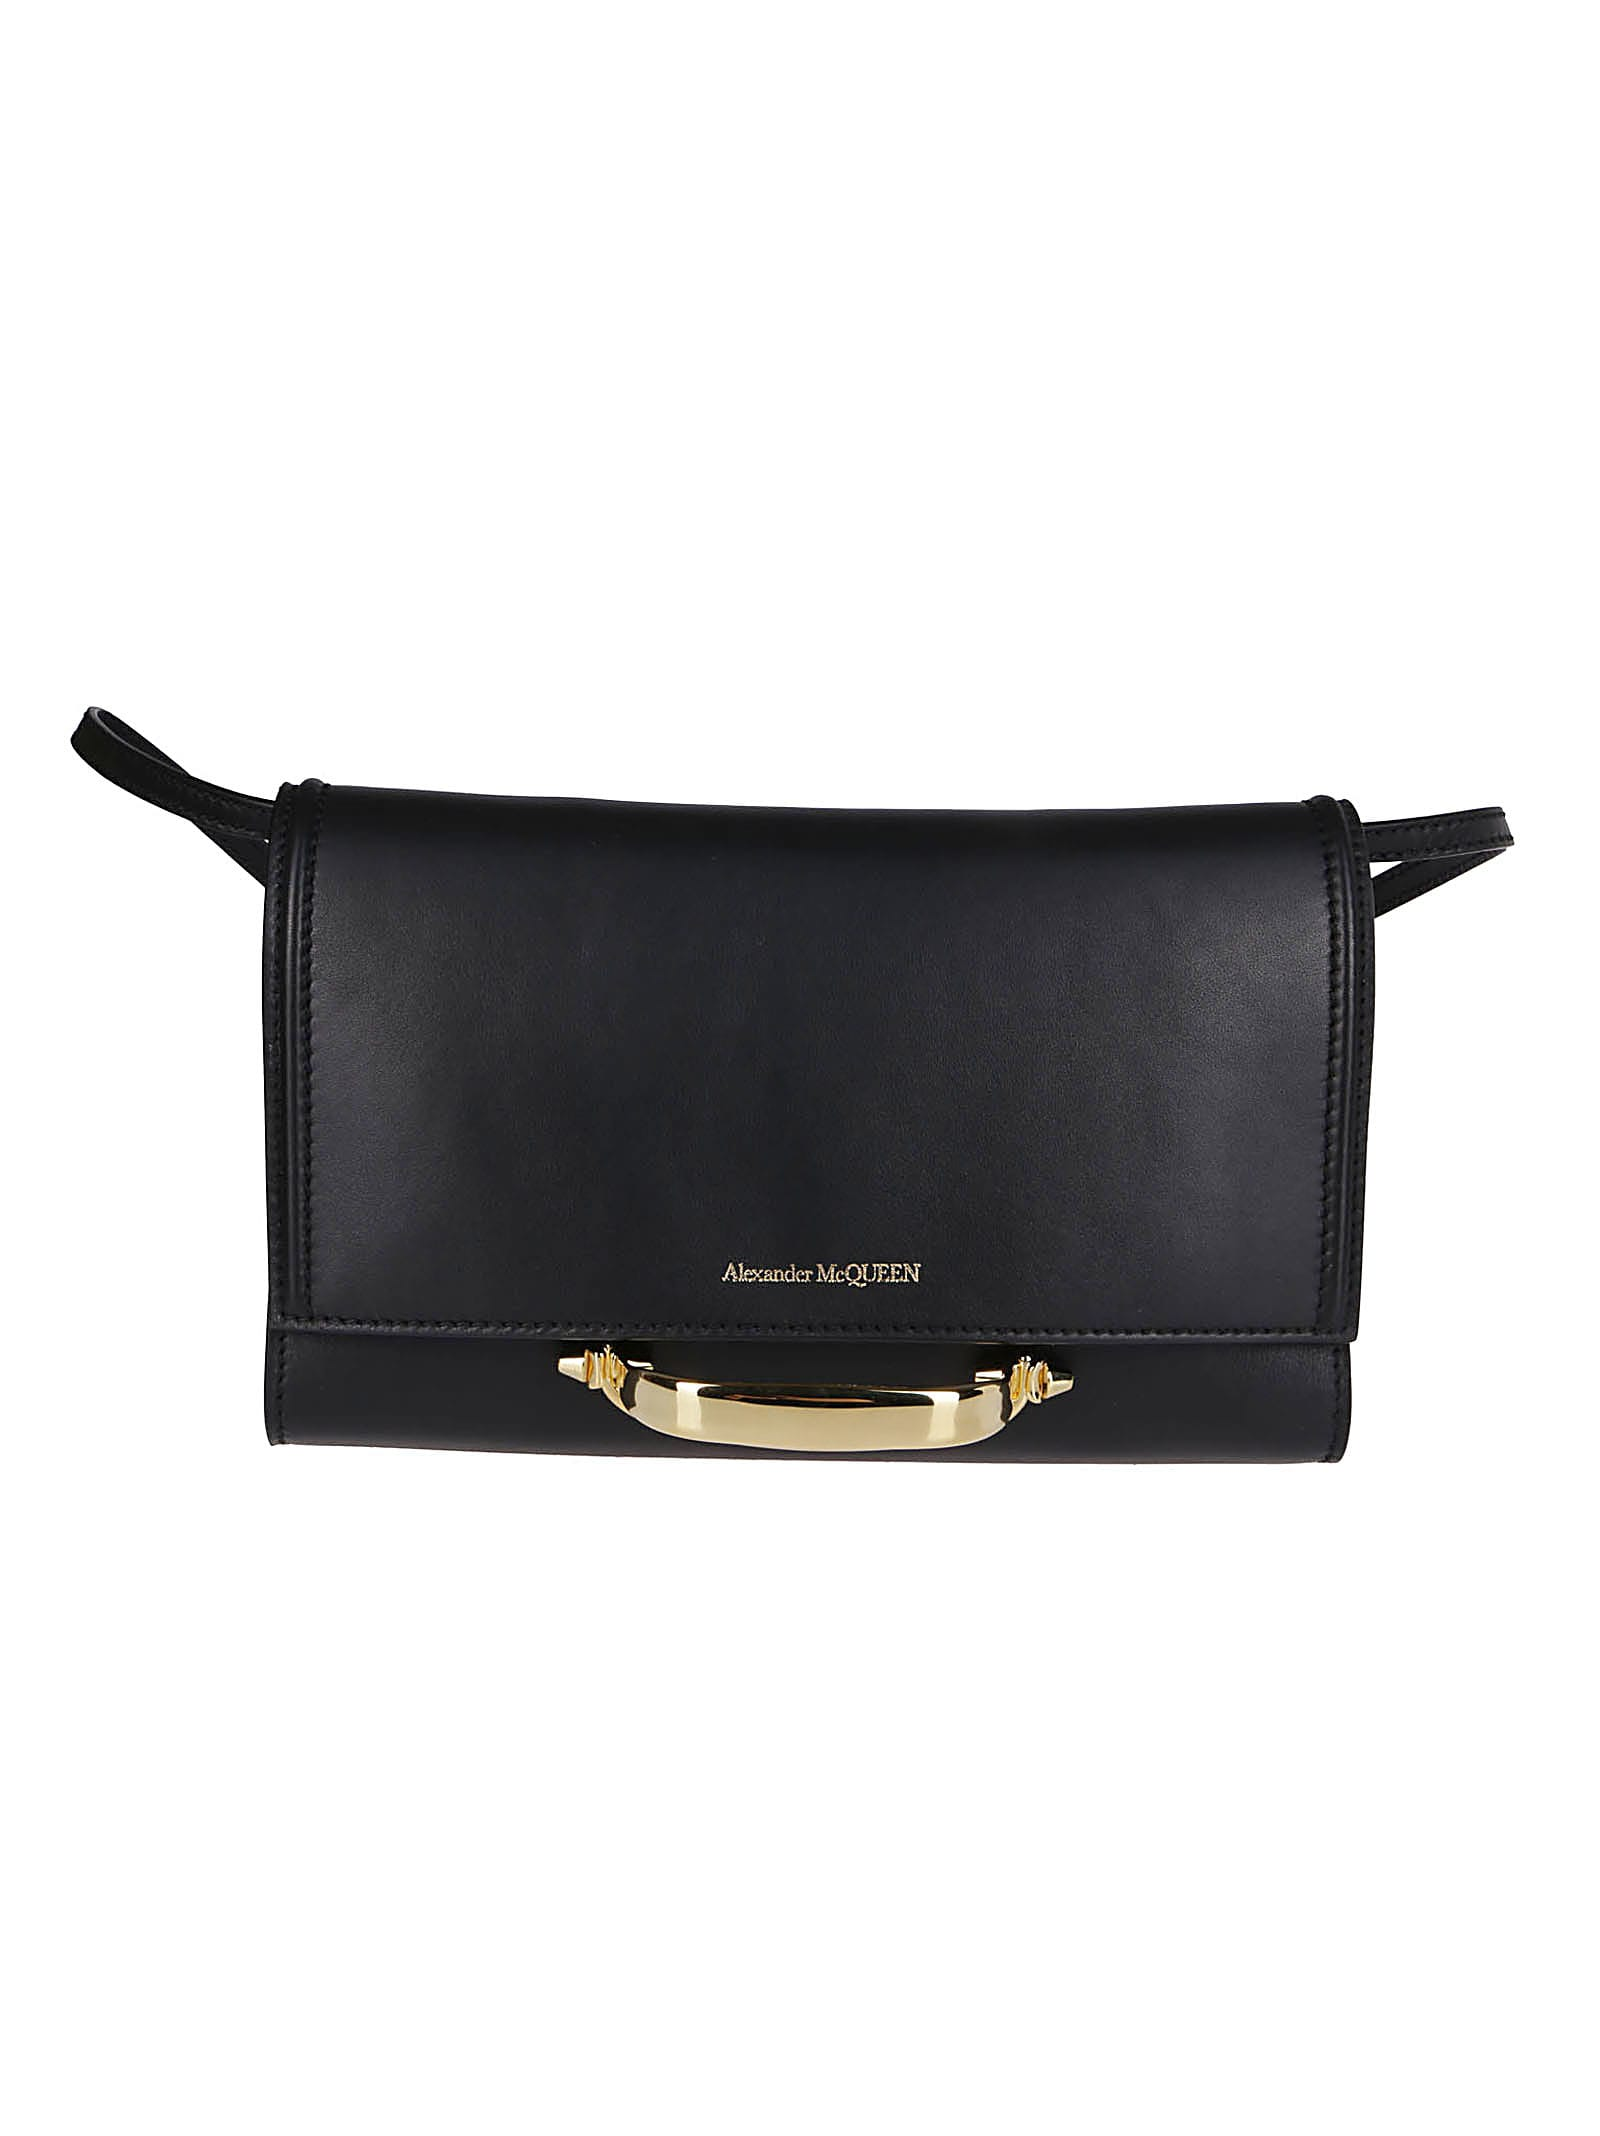 Alexander Mcqueen Black Leather The Story Shoulder Bag In Black Red